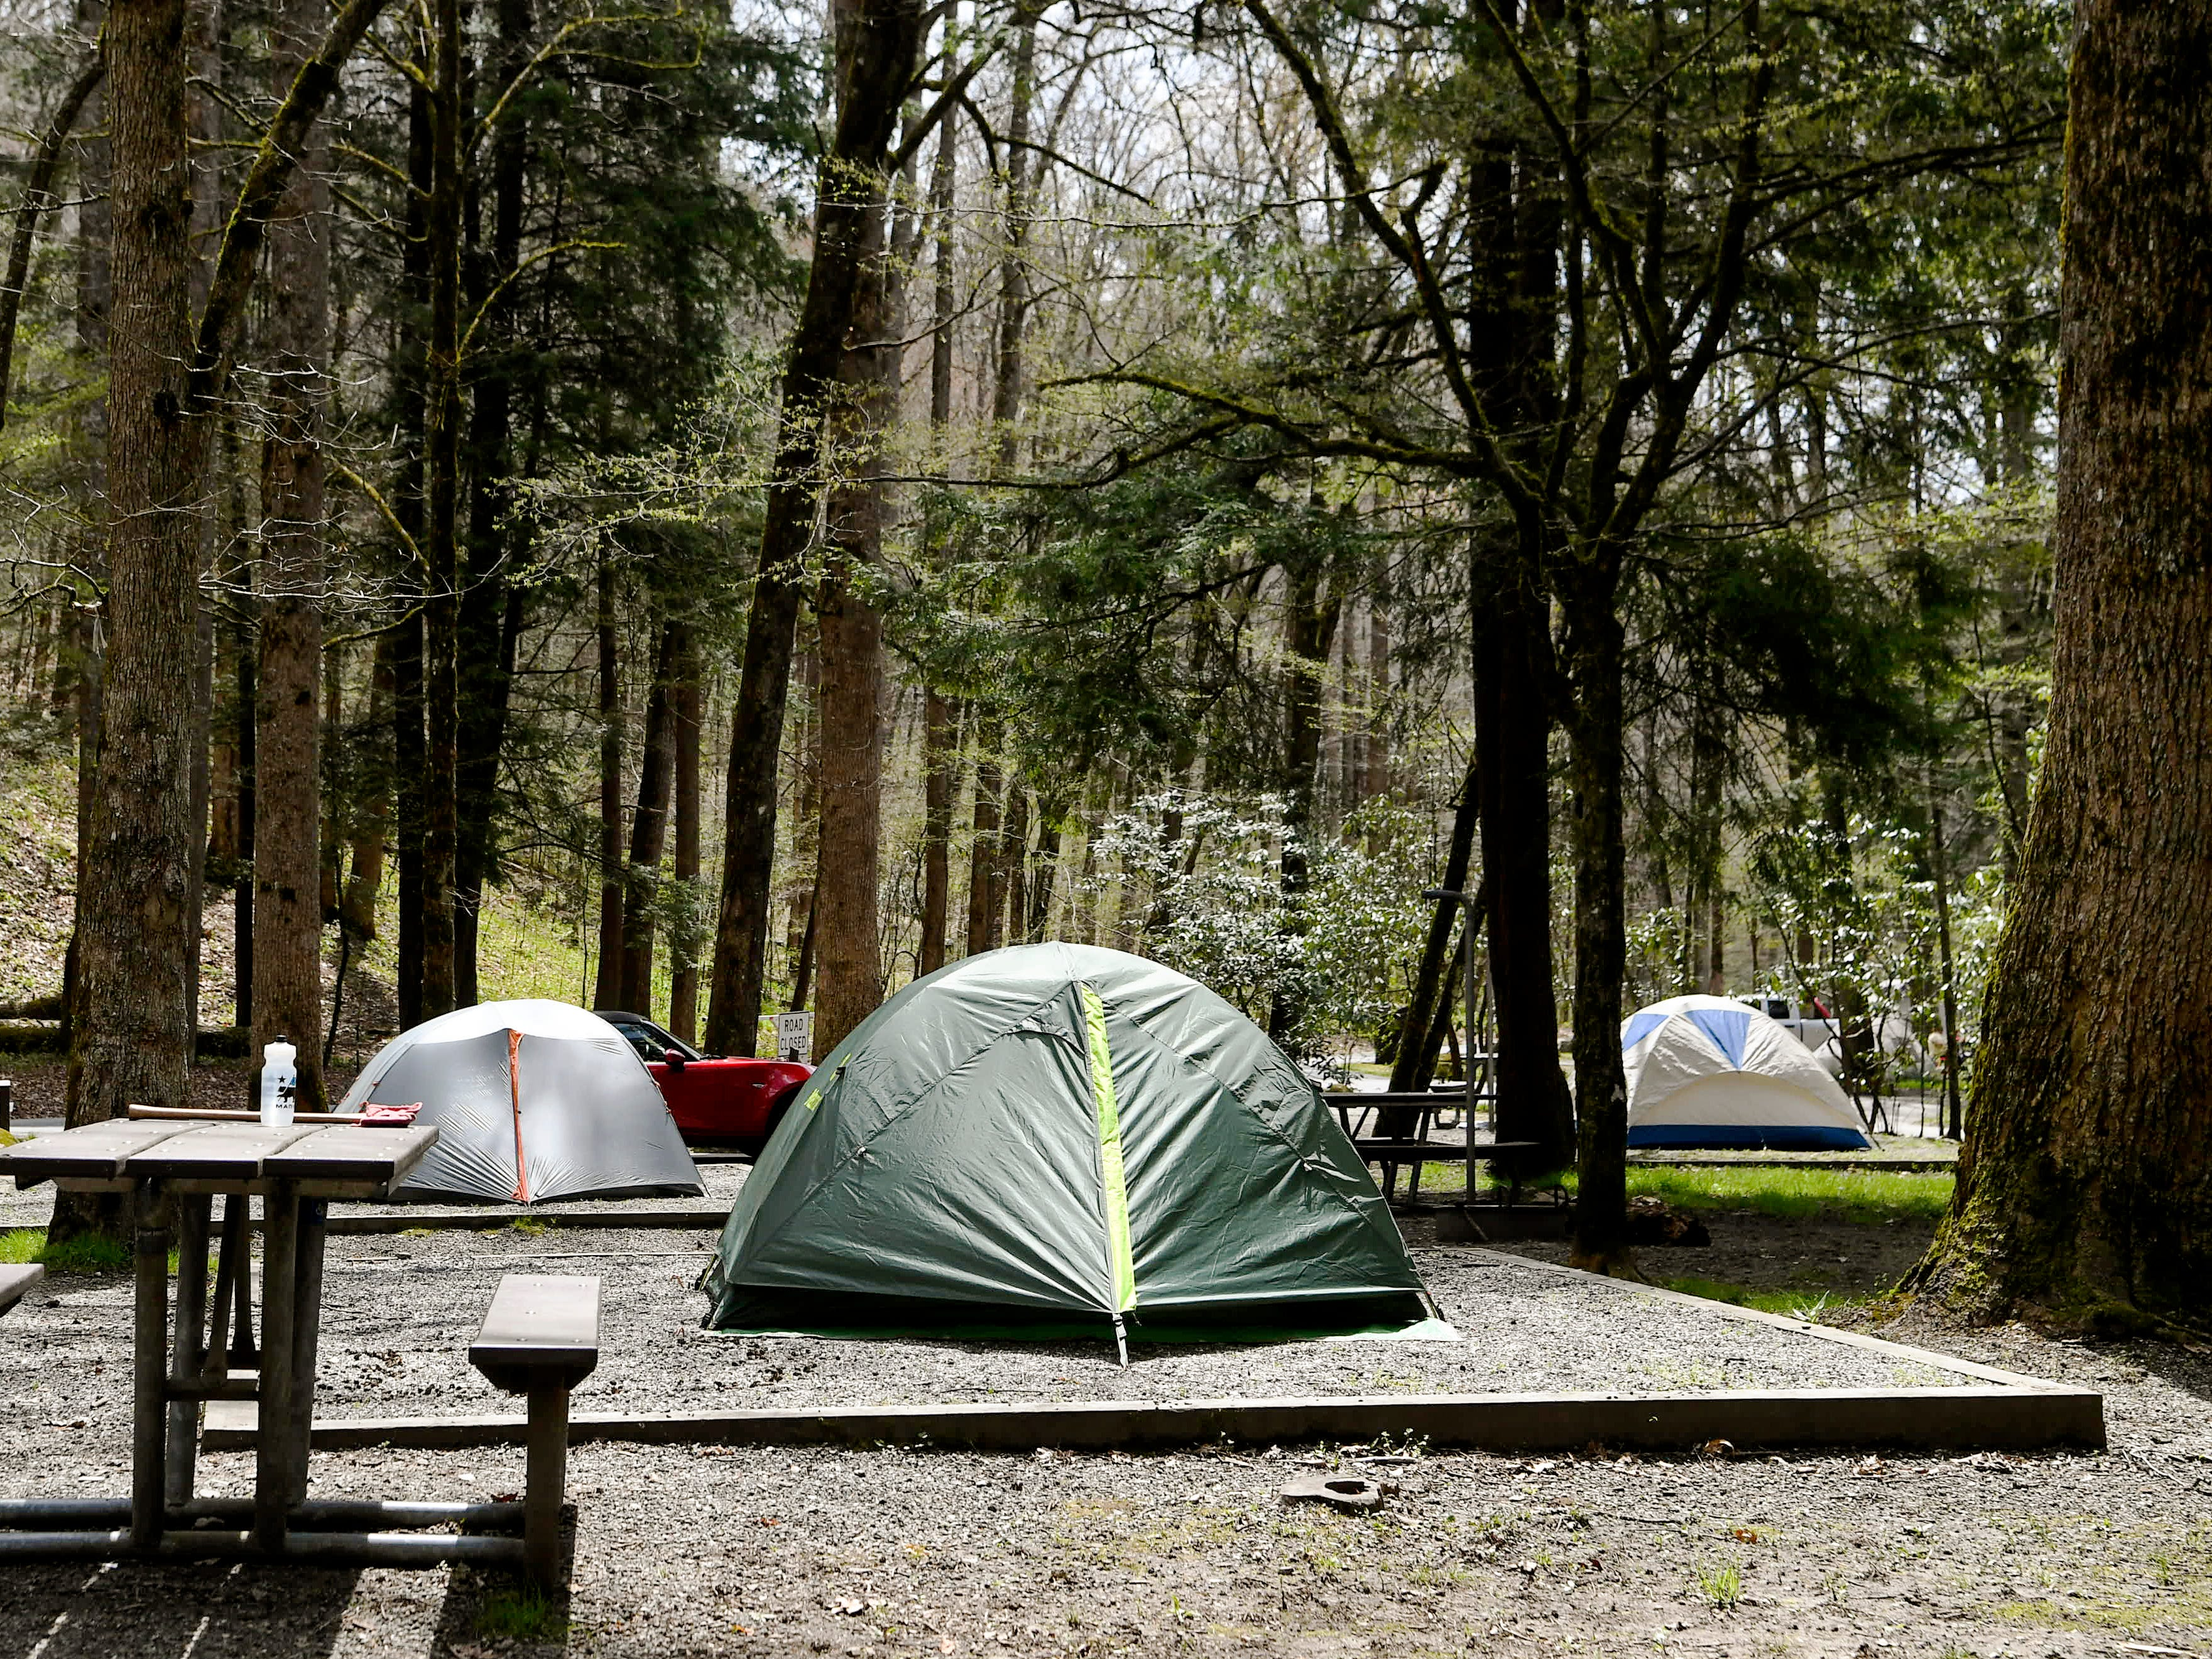 Great Smoky Mountains campgrounds, facility openings delayed this spring due to shutdown